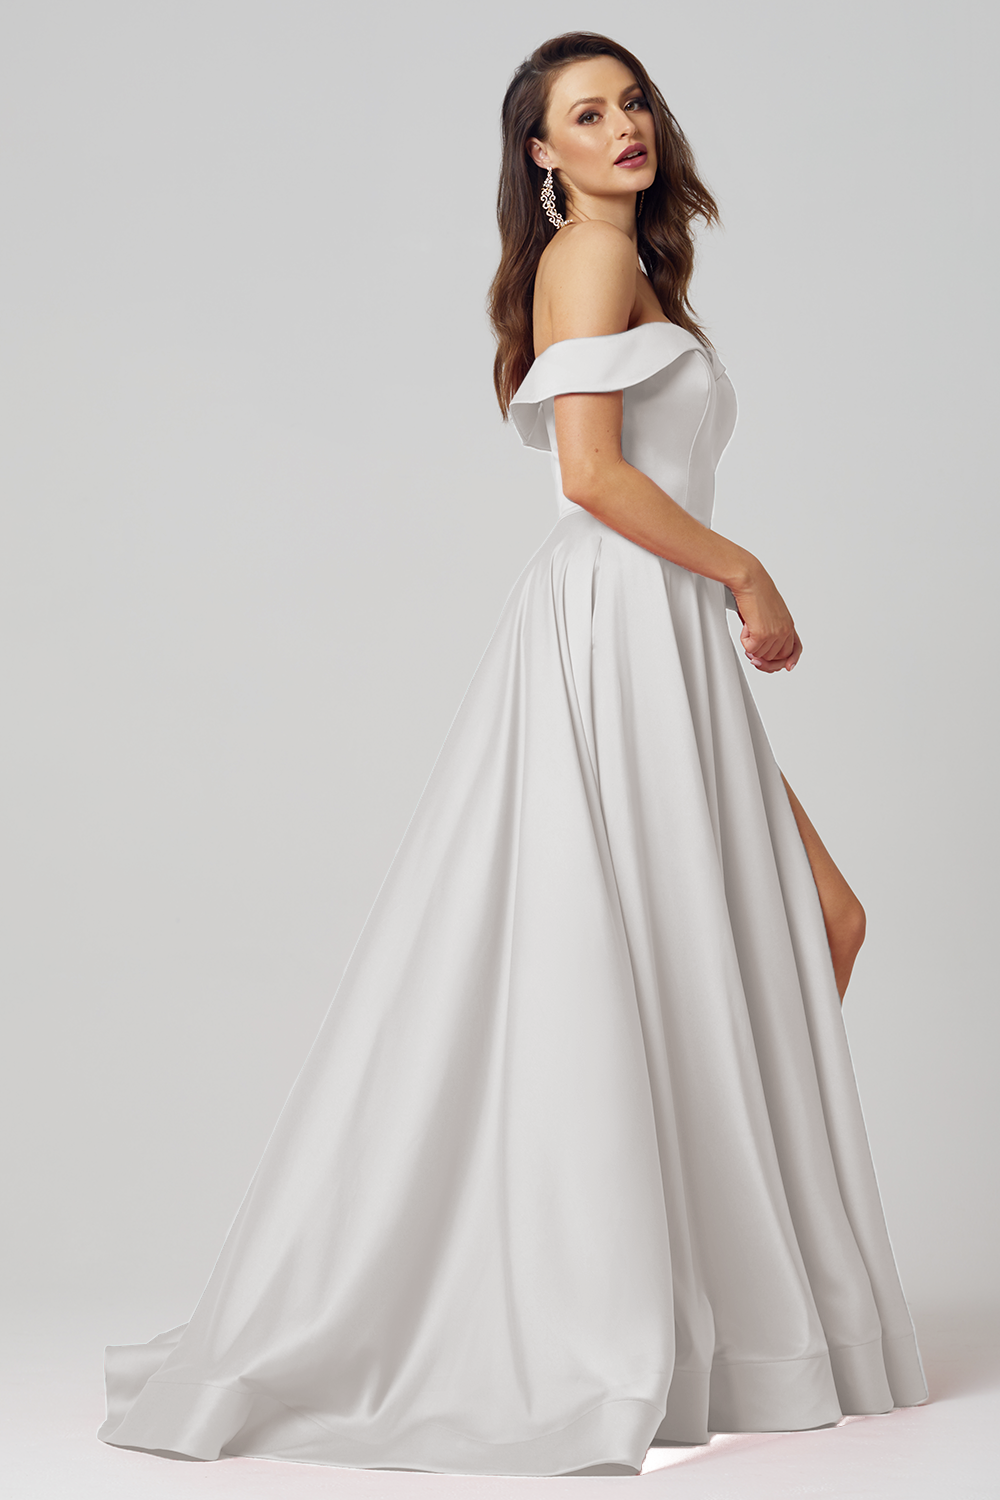 Pearl Strapless A-Line Formal Dress – PO876 Vintage White